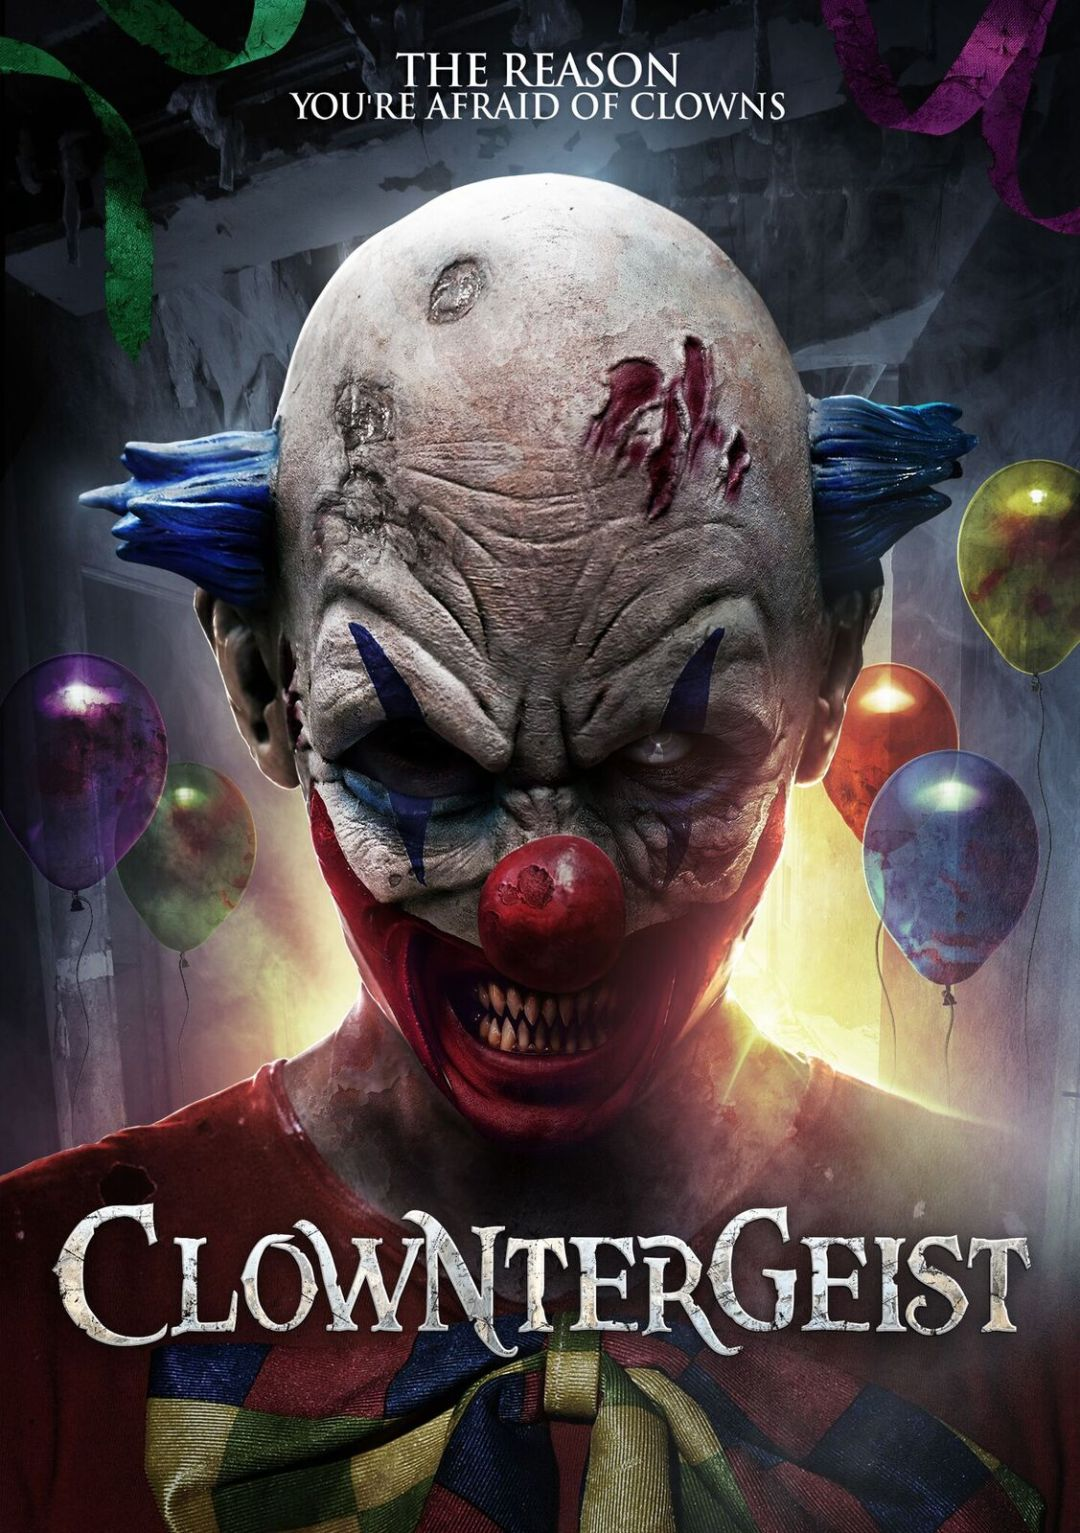 Clowntergeist – Movie Review